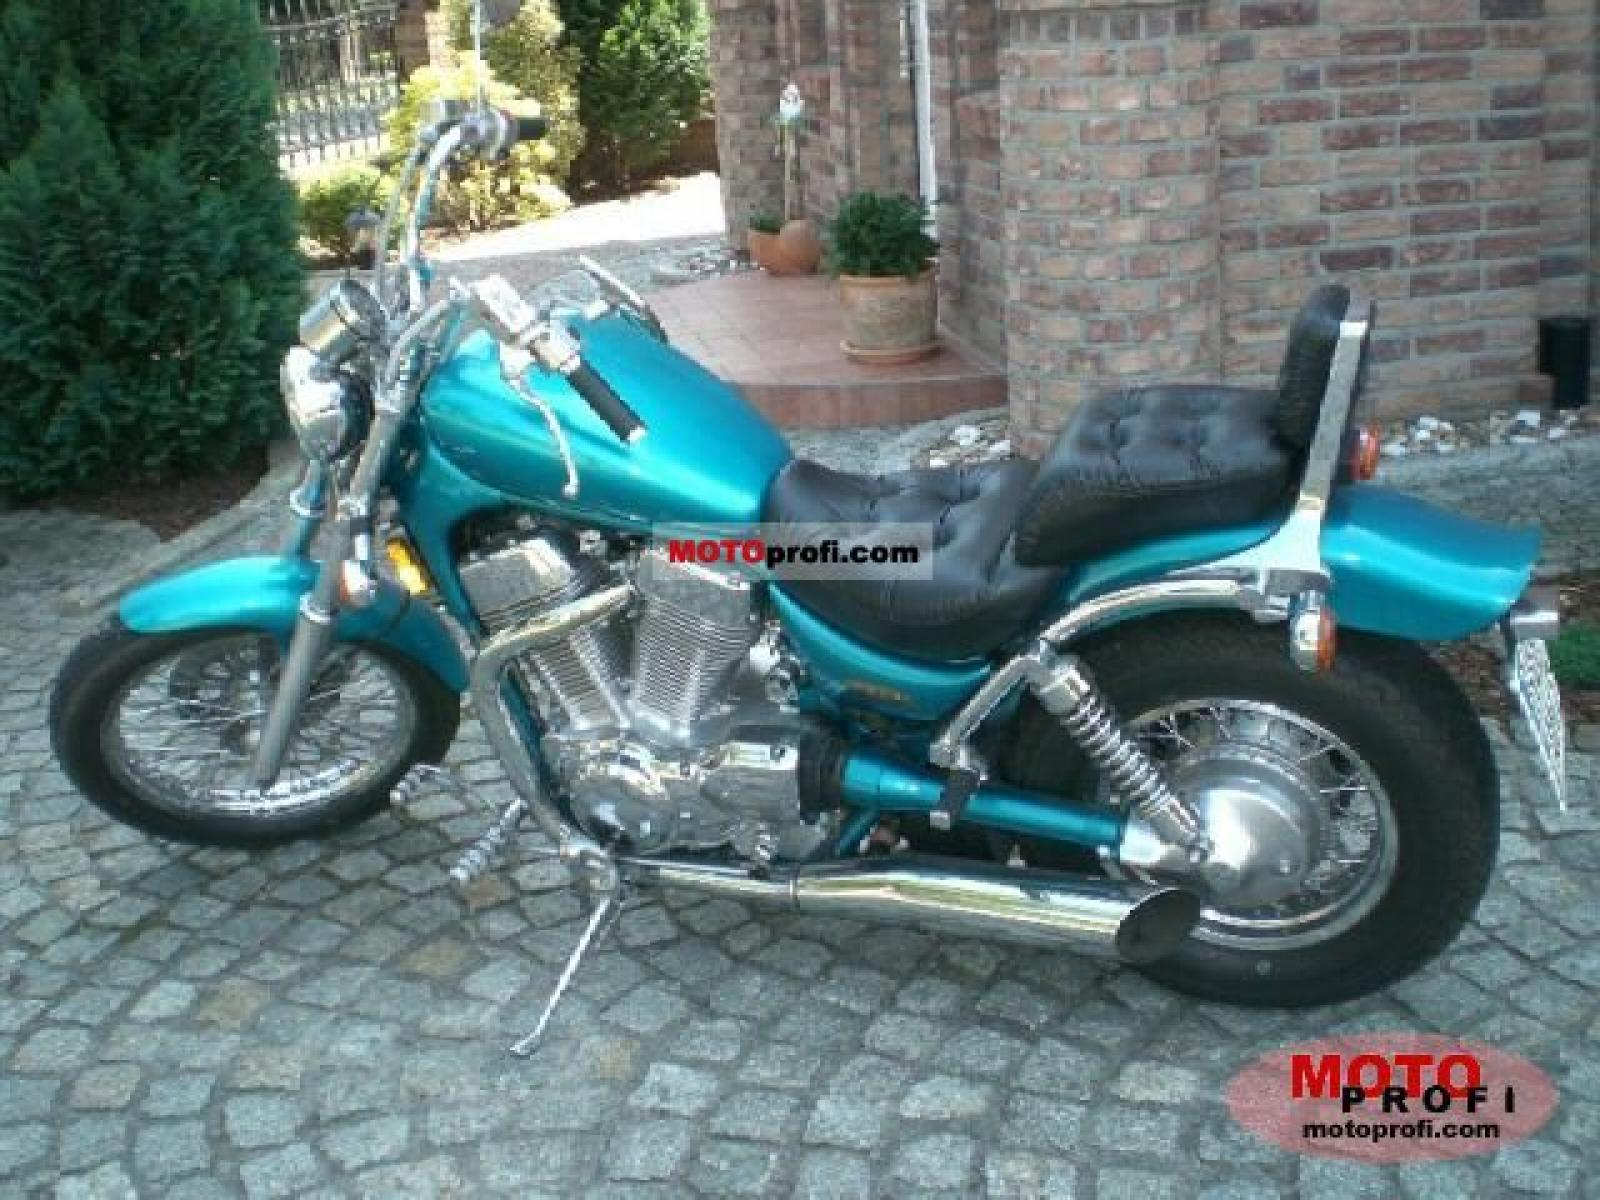 Suzuki VS 1400 GLP Intruder 1998 #1 800 1024 1280 1600 origin